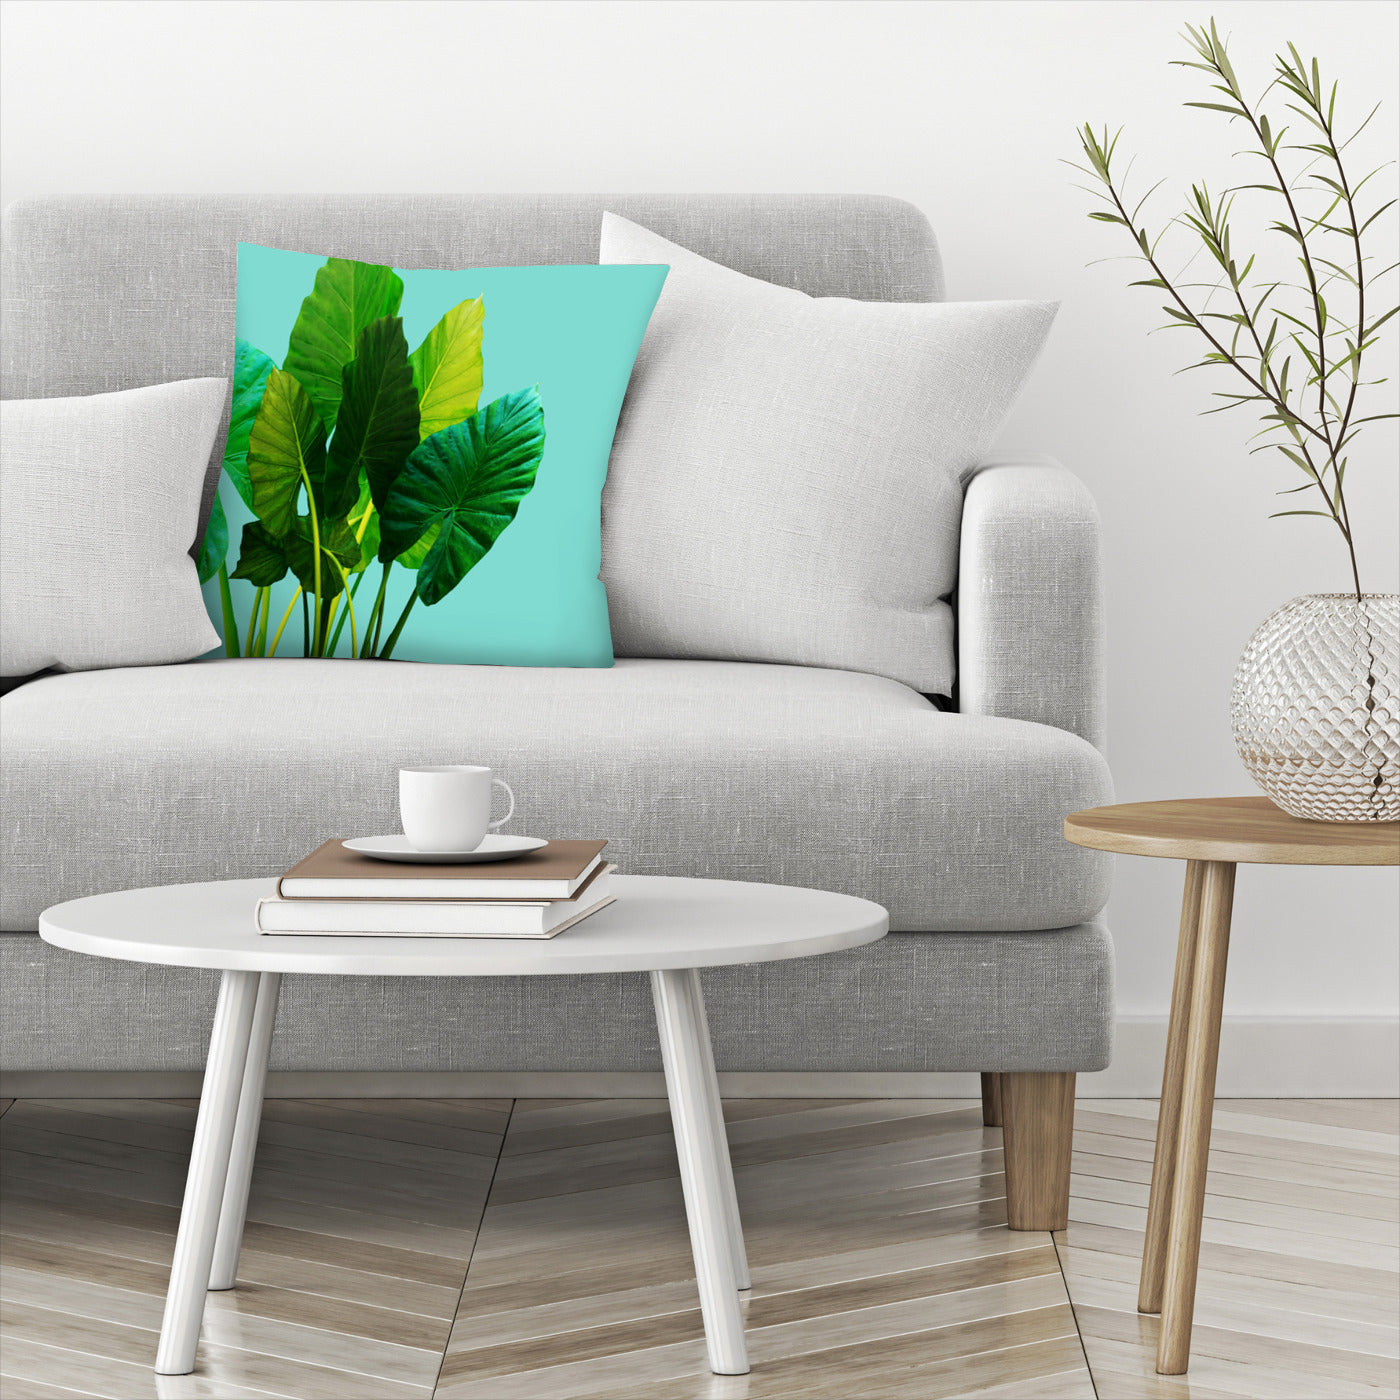 Urban Jungle by Emanuela Carratoni Decorative Pillow - Decorative Pillow - Americanflat